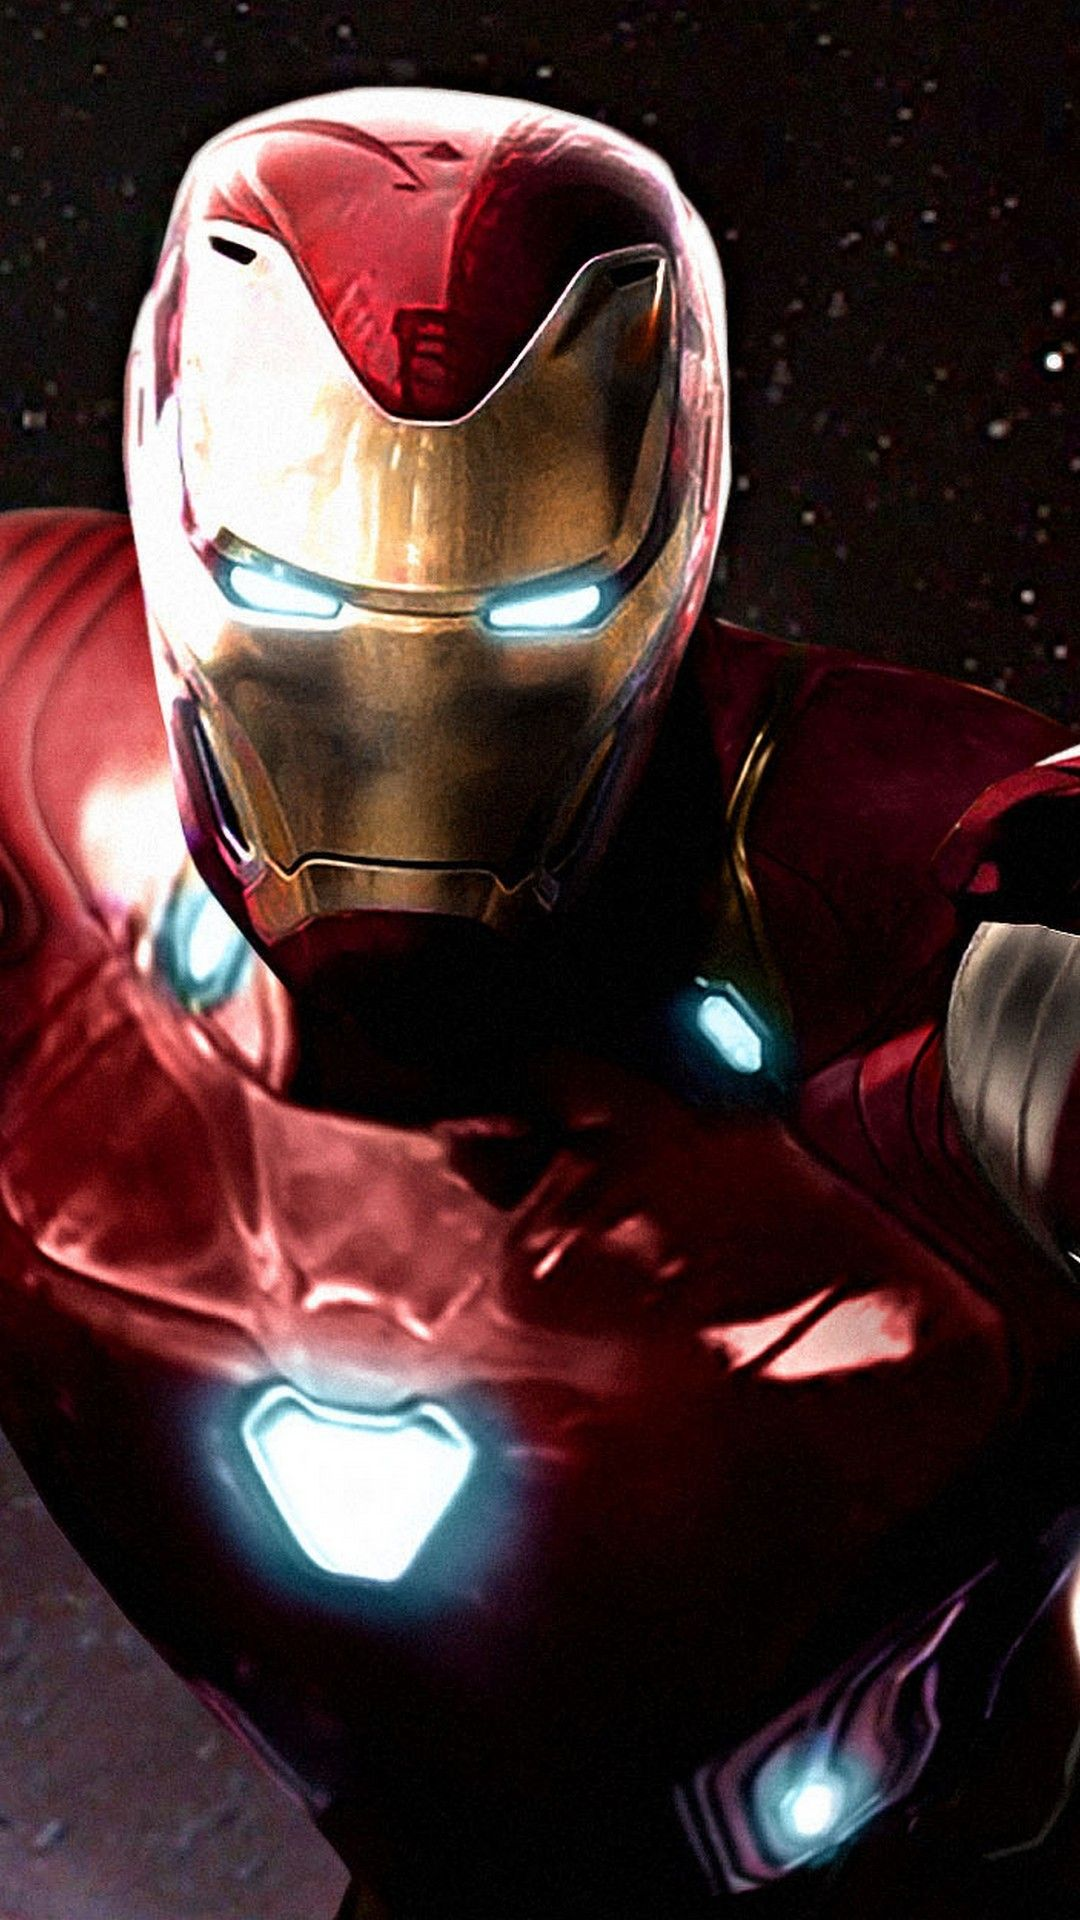 Iron Man Avengers Infinity War Iphone Wallpaper Marvel Iron Man